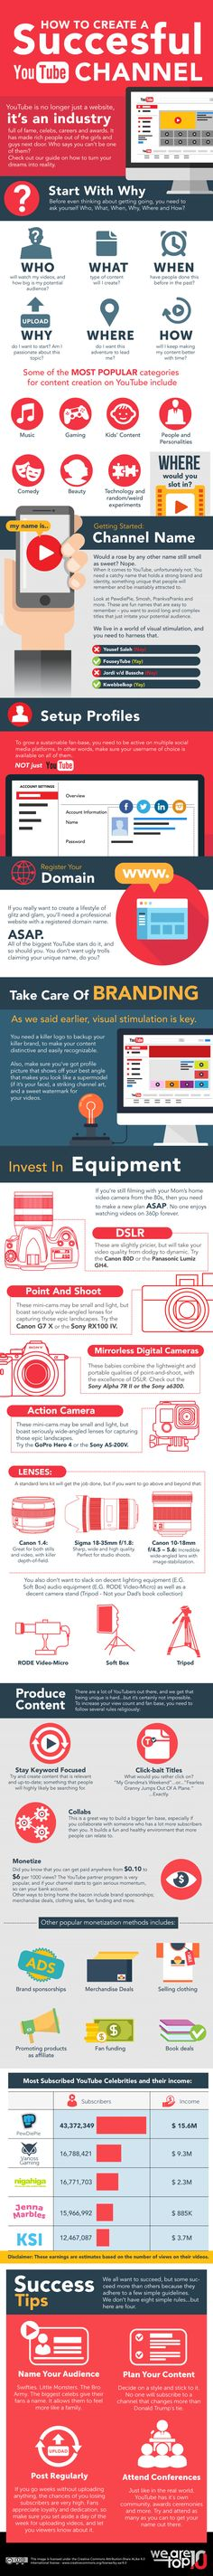 Great infographic giving tips about how to be successful on YouTube. Click on pin to contact us for help.